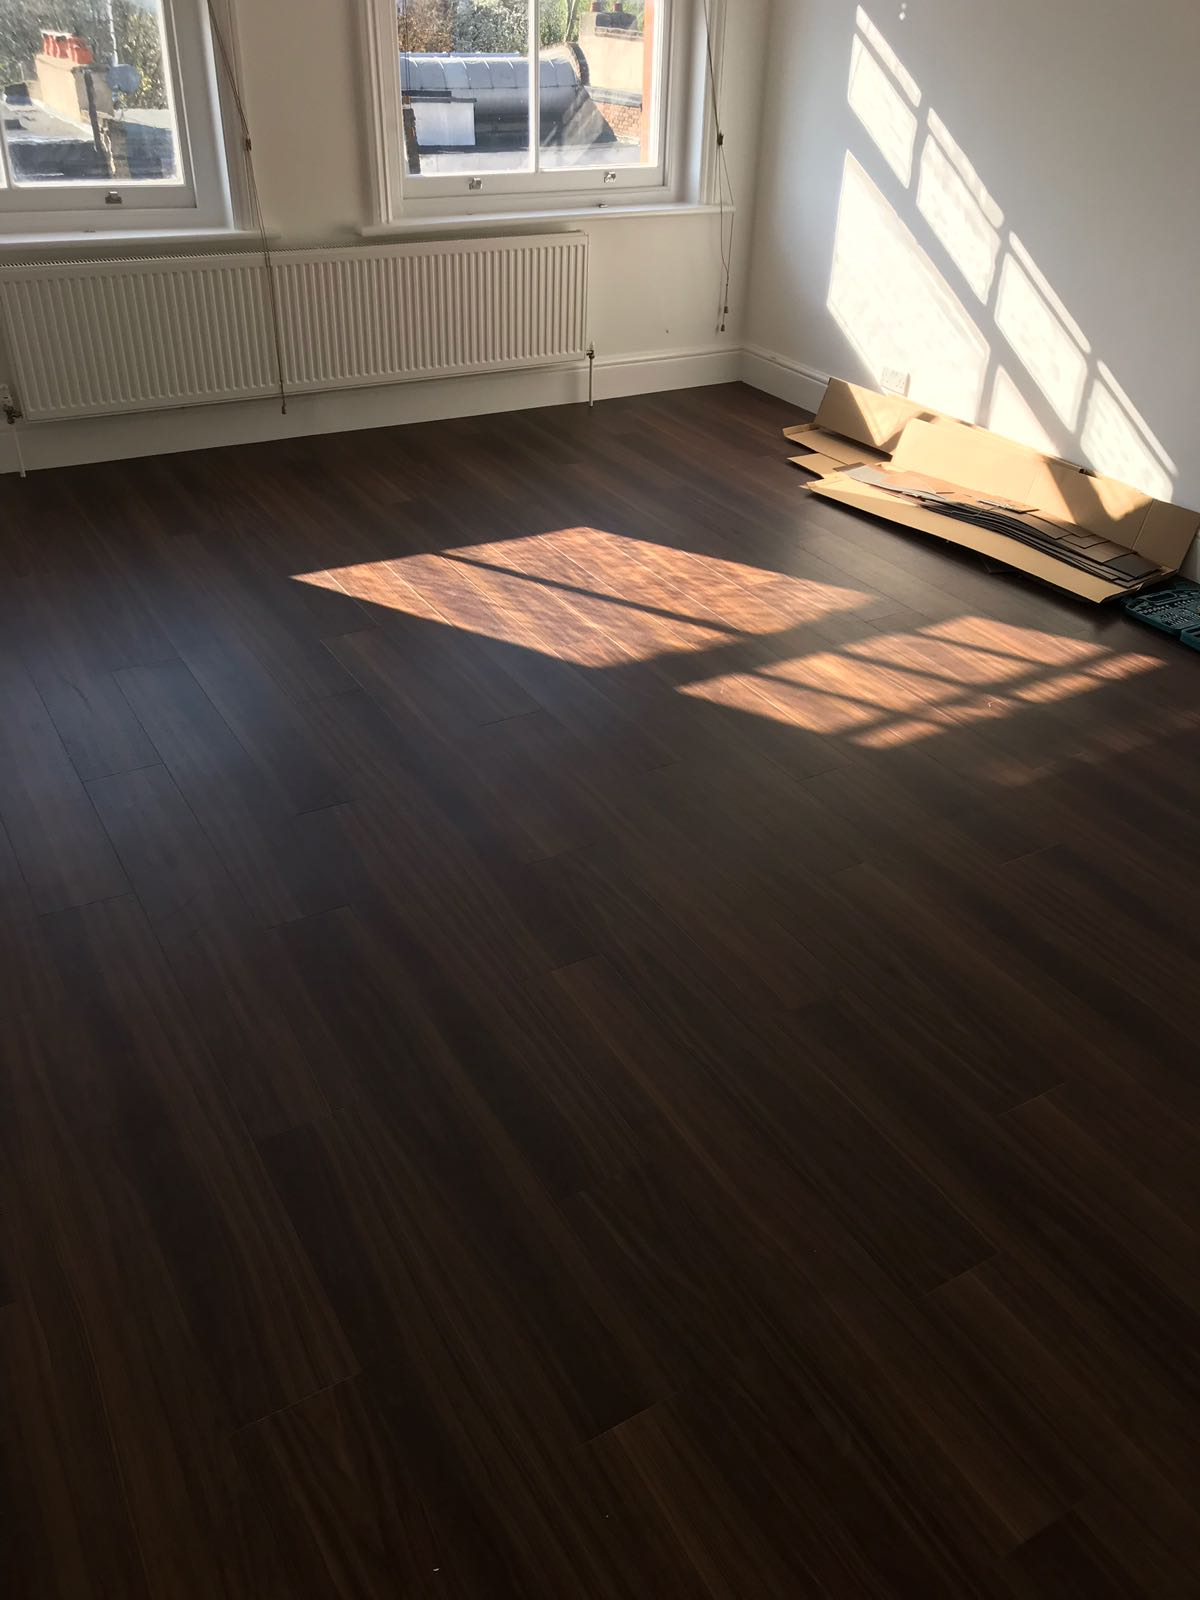 2018-04-24_Amtico Flooring Installed In Chelsea Residence (8)